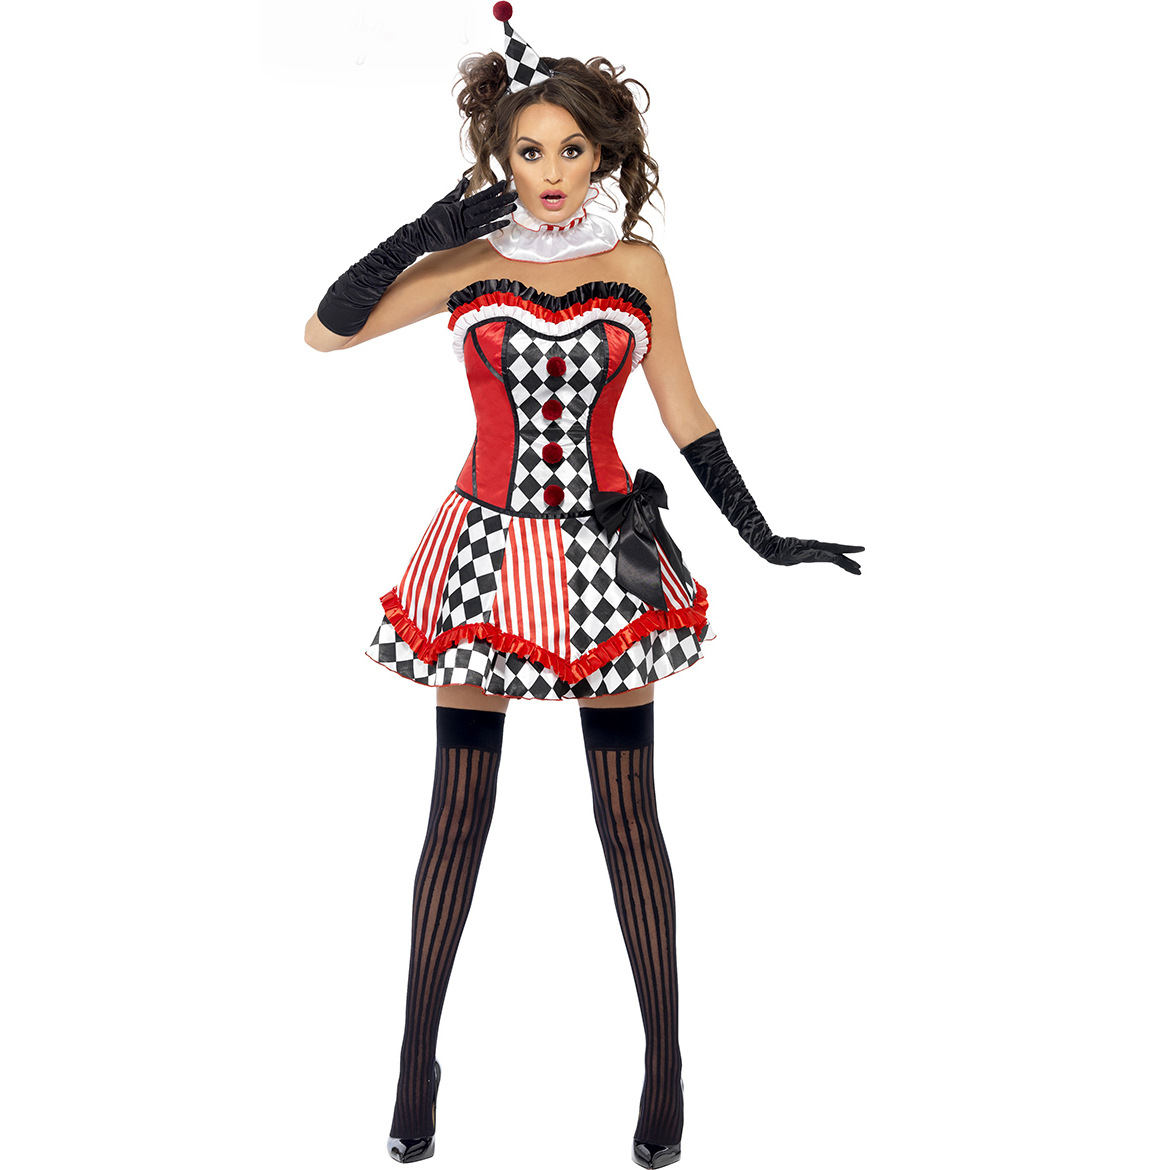 Dancing Stage <font><b>Costumes</b></font> <font><b>Halloween</b></font> <font><b>Sexy</b></font> Role Play Circus Clown Uniform Women Cosplay Dress Stage Permance Clos Sportswear image